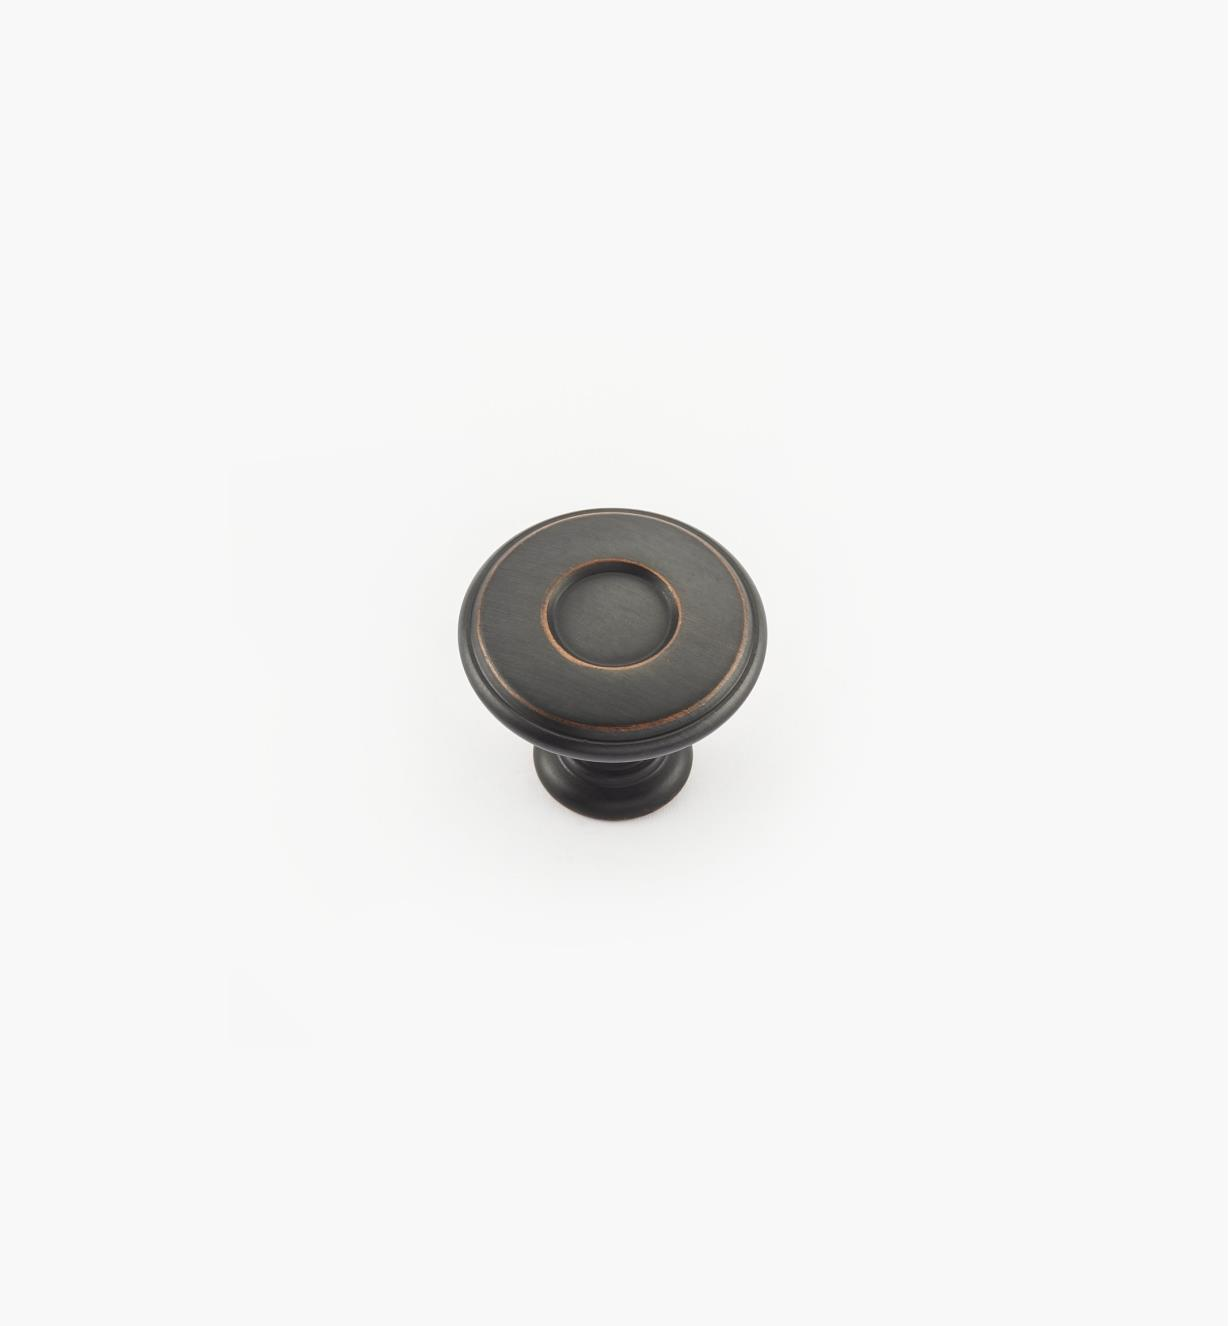 02A4341 - Porter Oil-Rubbed Bronze Round Knob